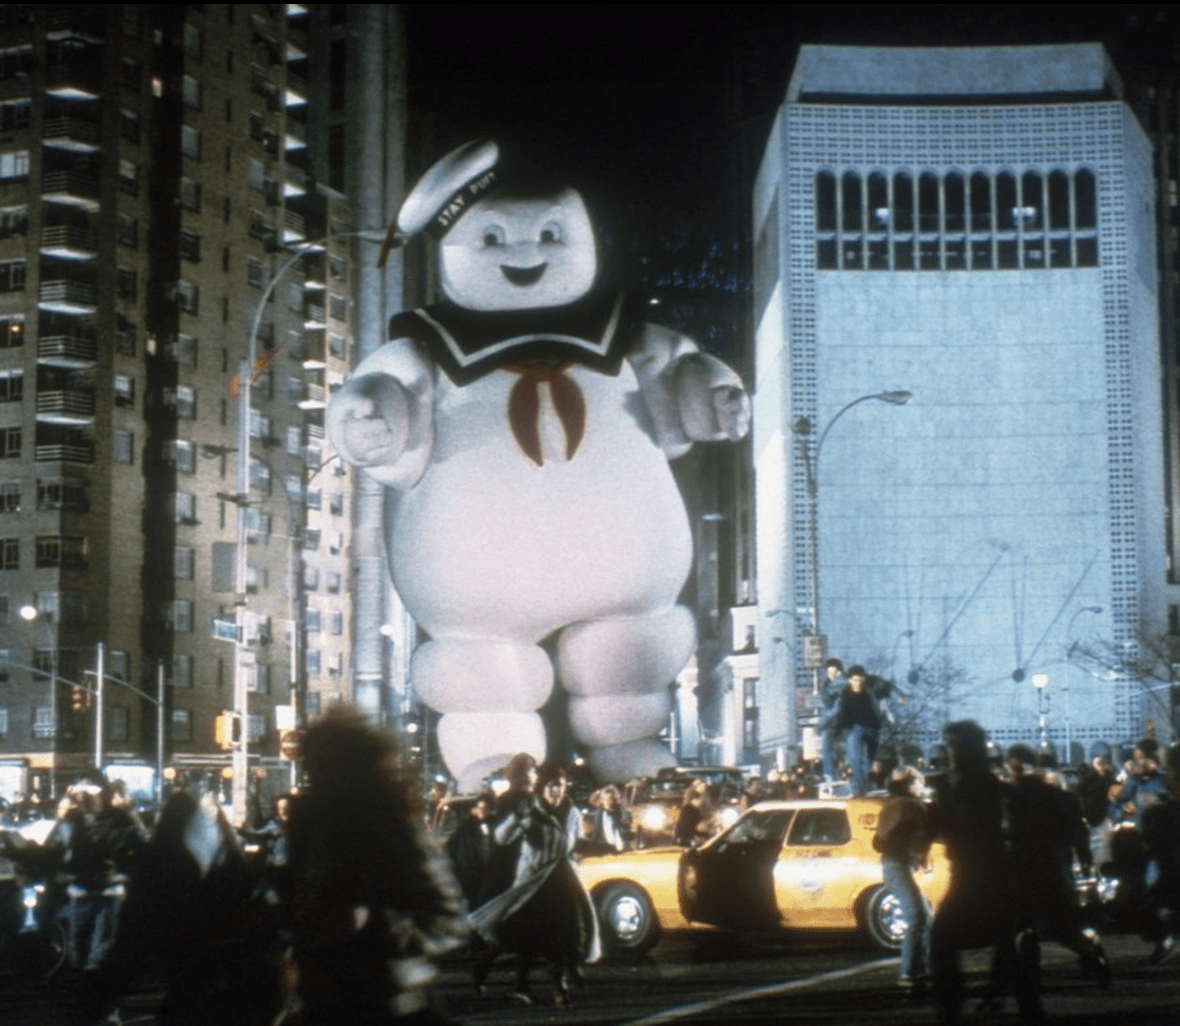 1 14 e1608550643498 20 Things You May Have Missed In Ghostbusters